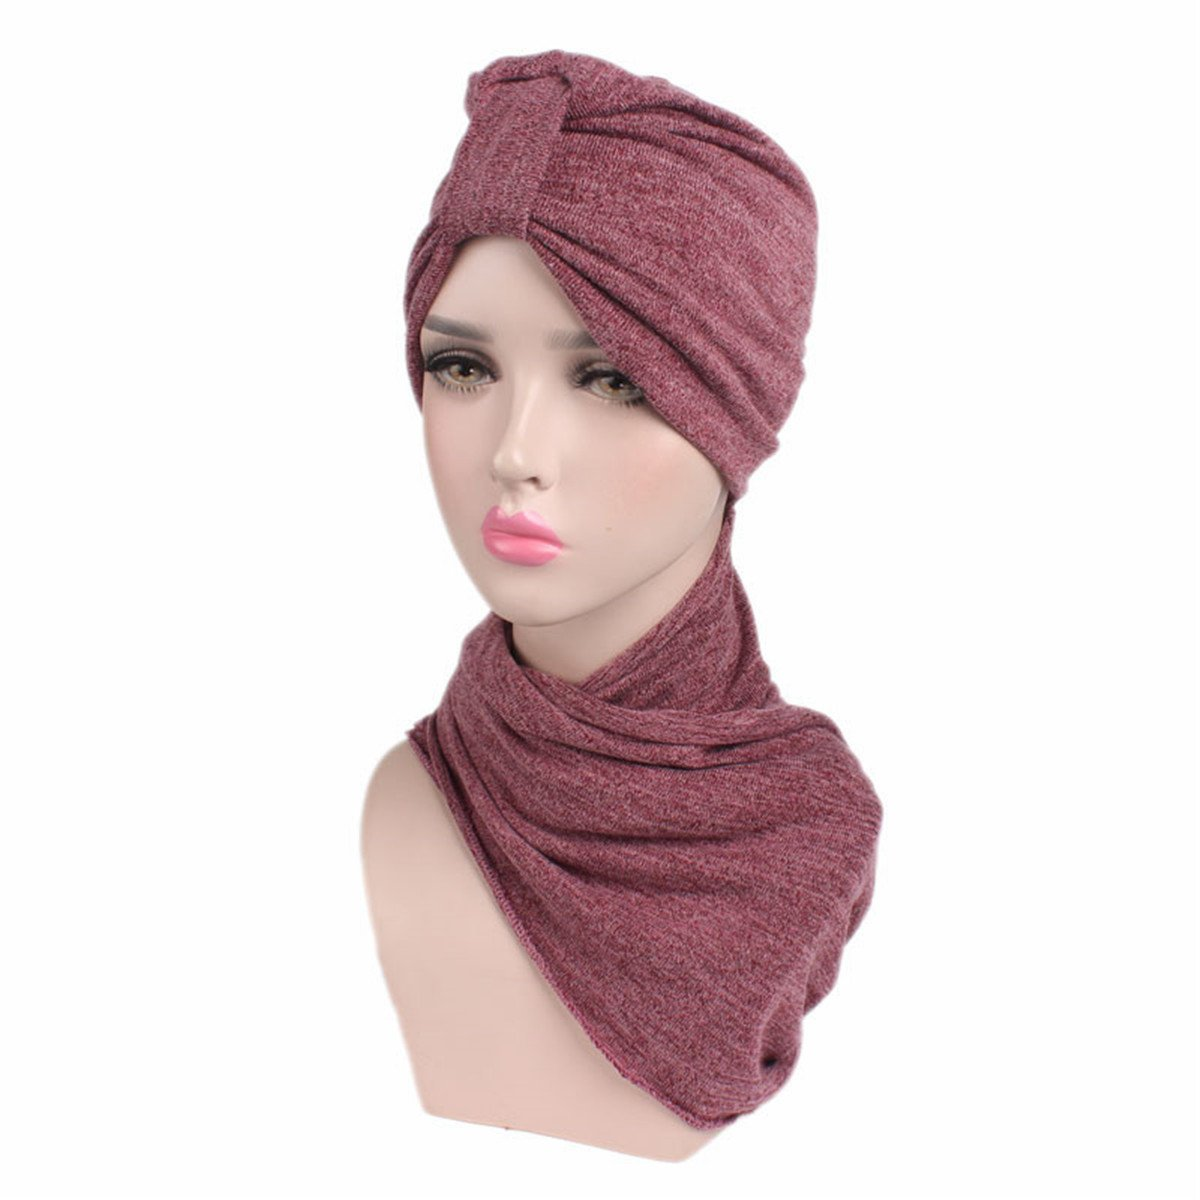 Qhome Women Multi Function Hijab Turban With Scarf Head Wrap Extra Long Cotton Tube Headwrap Scarf Tie at Amazon Womens Clothing store: